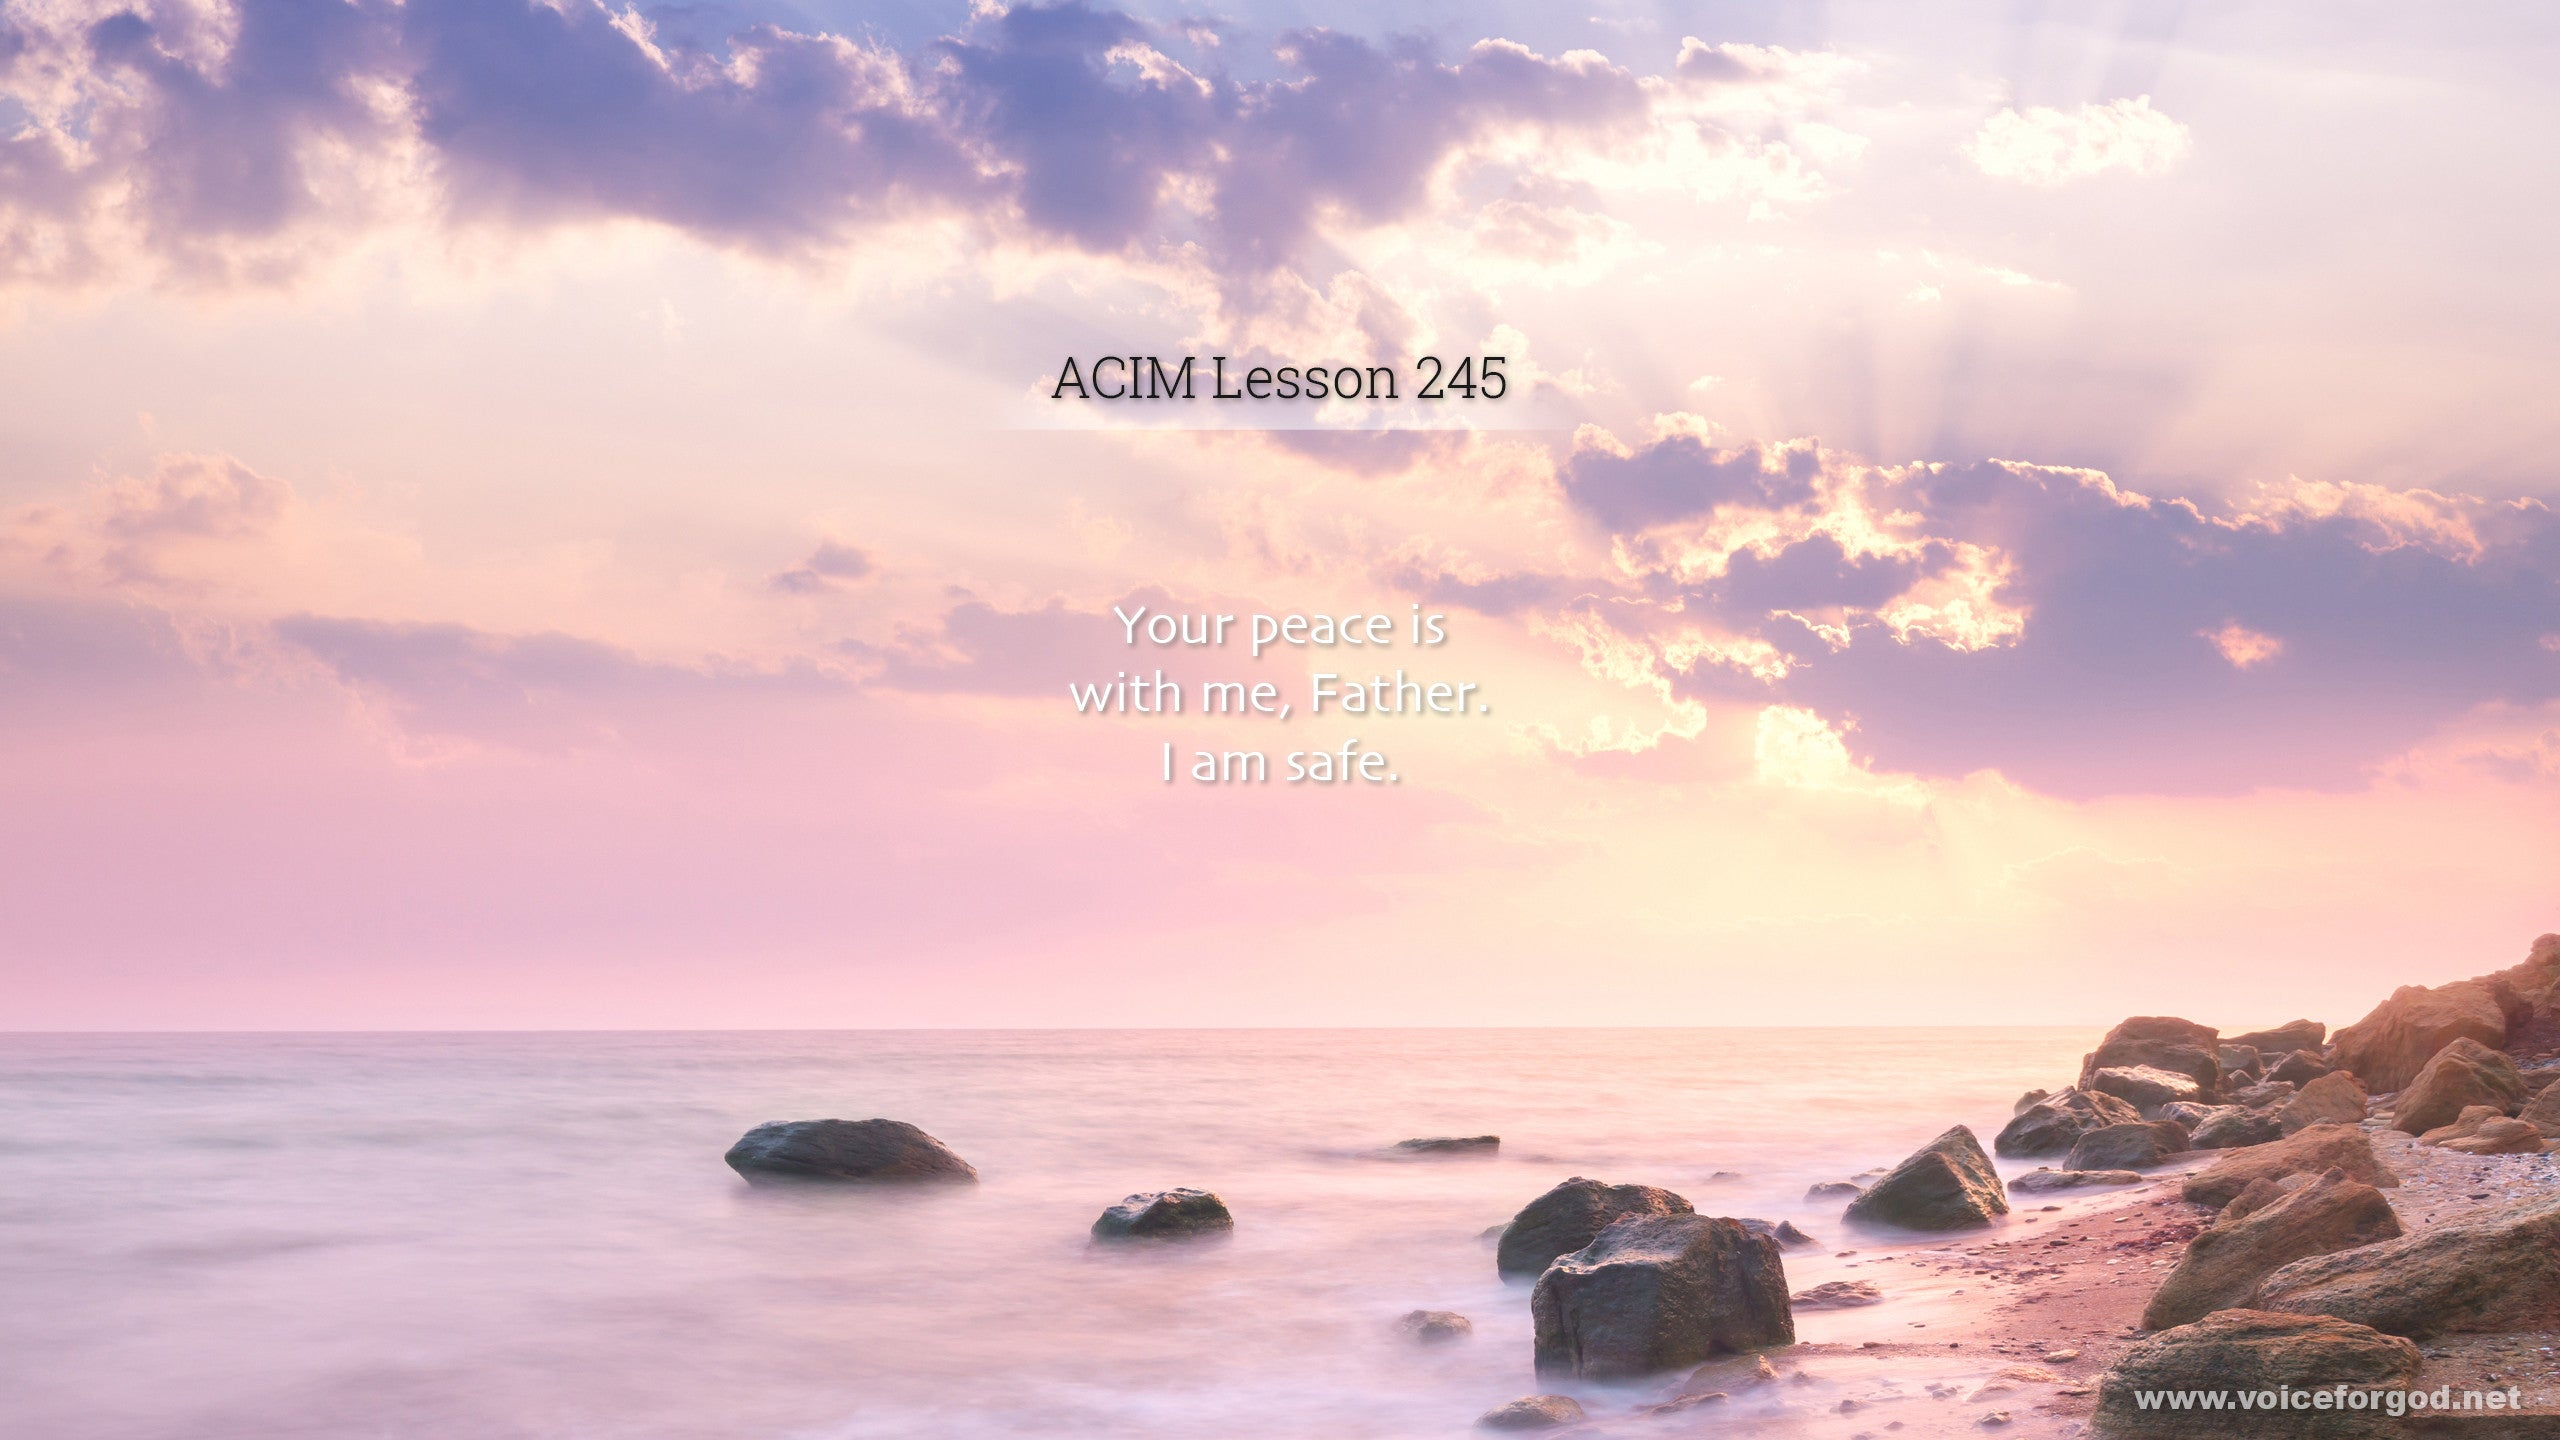 ACIM Lesson 245 - A Course in Miracles Workbook Lesson 245